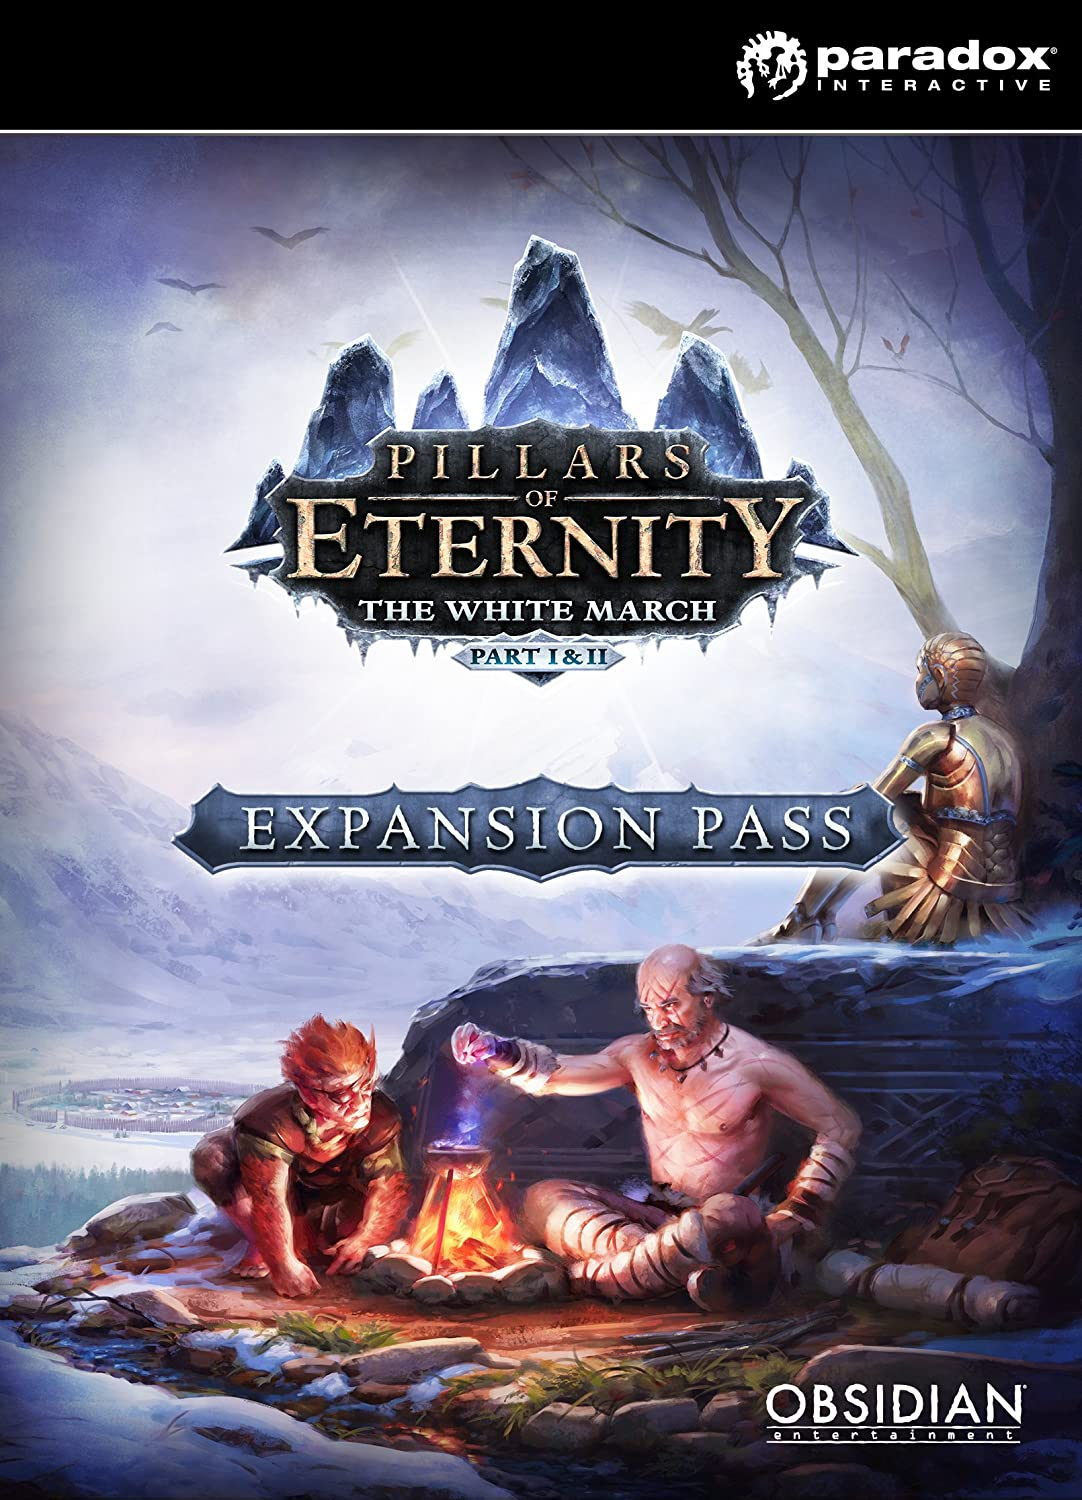 Pillars of Eternity - Expansion Pass [PC Code - Steam